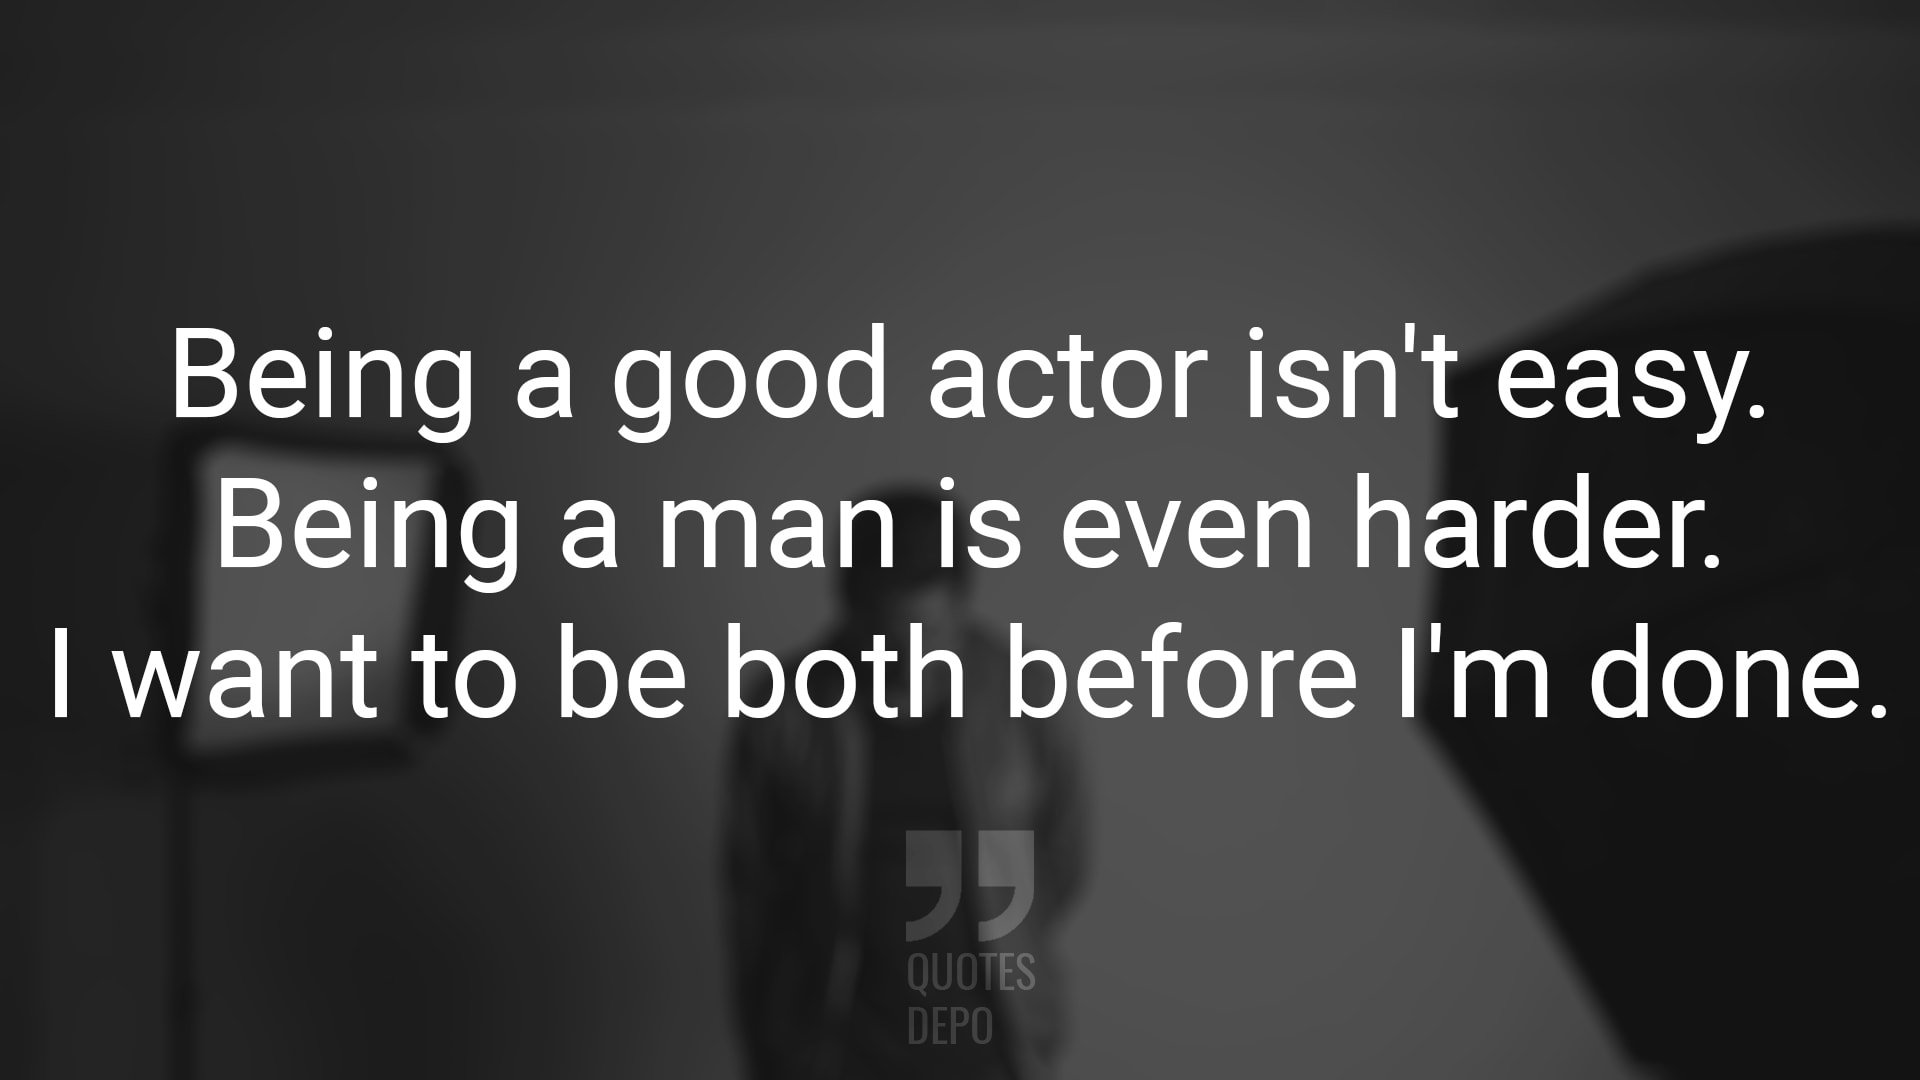 Being a Good Actor isn't Easy